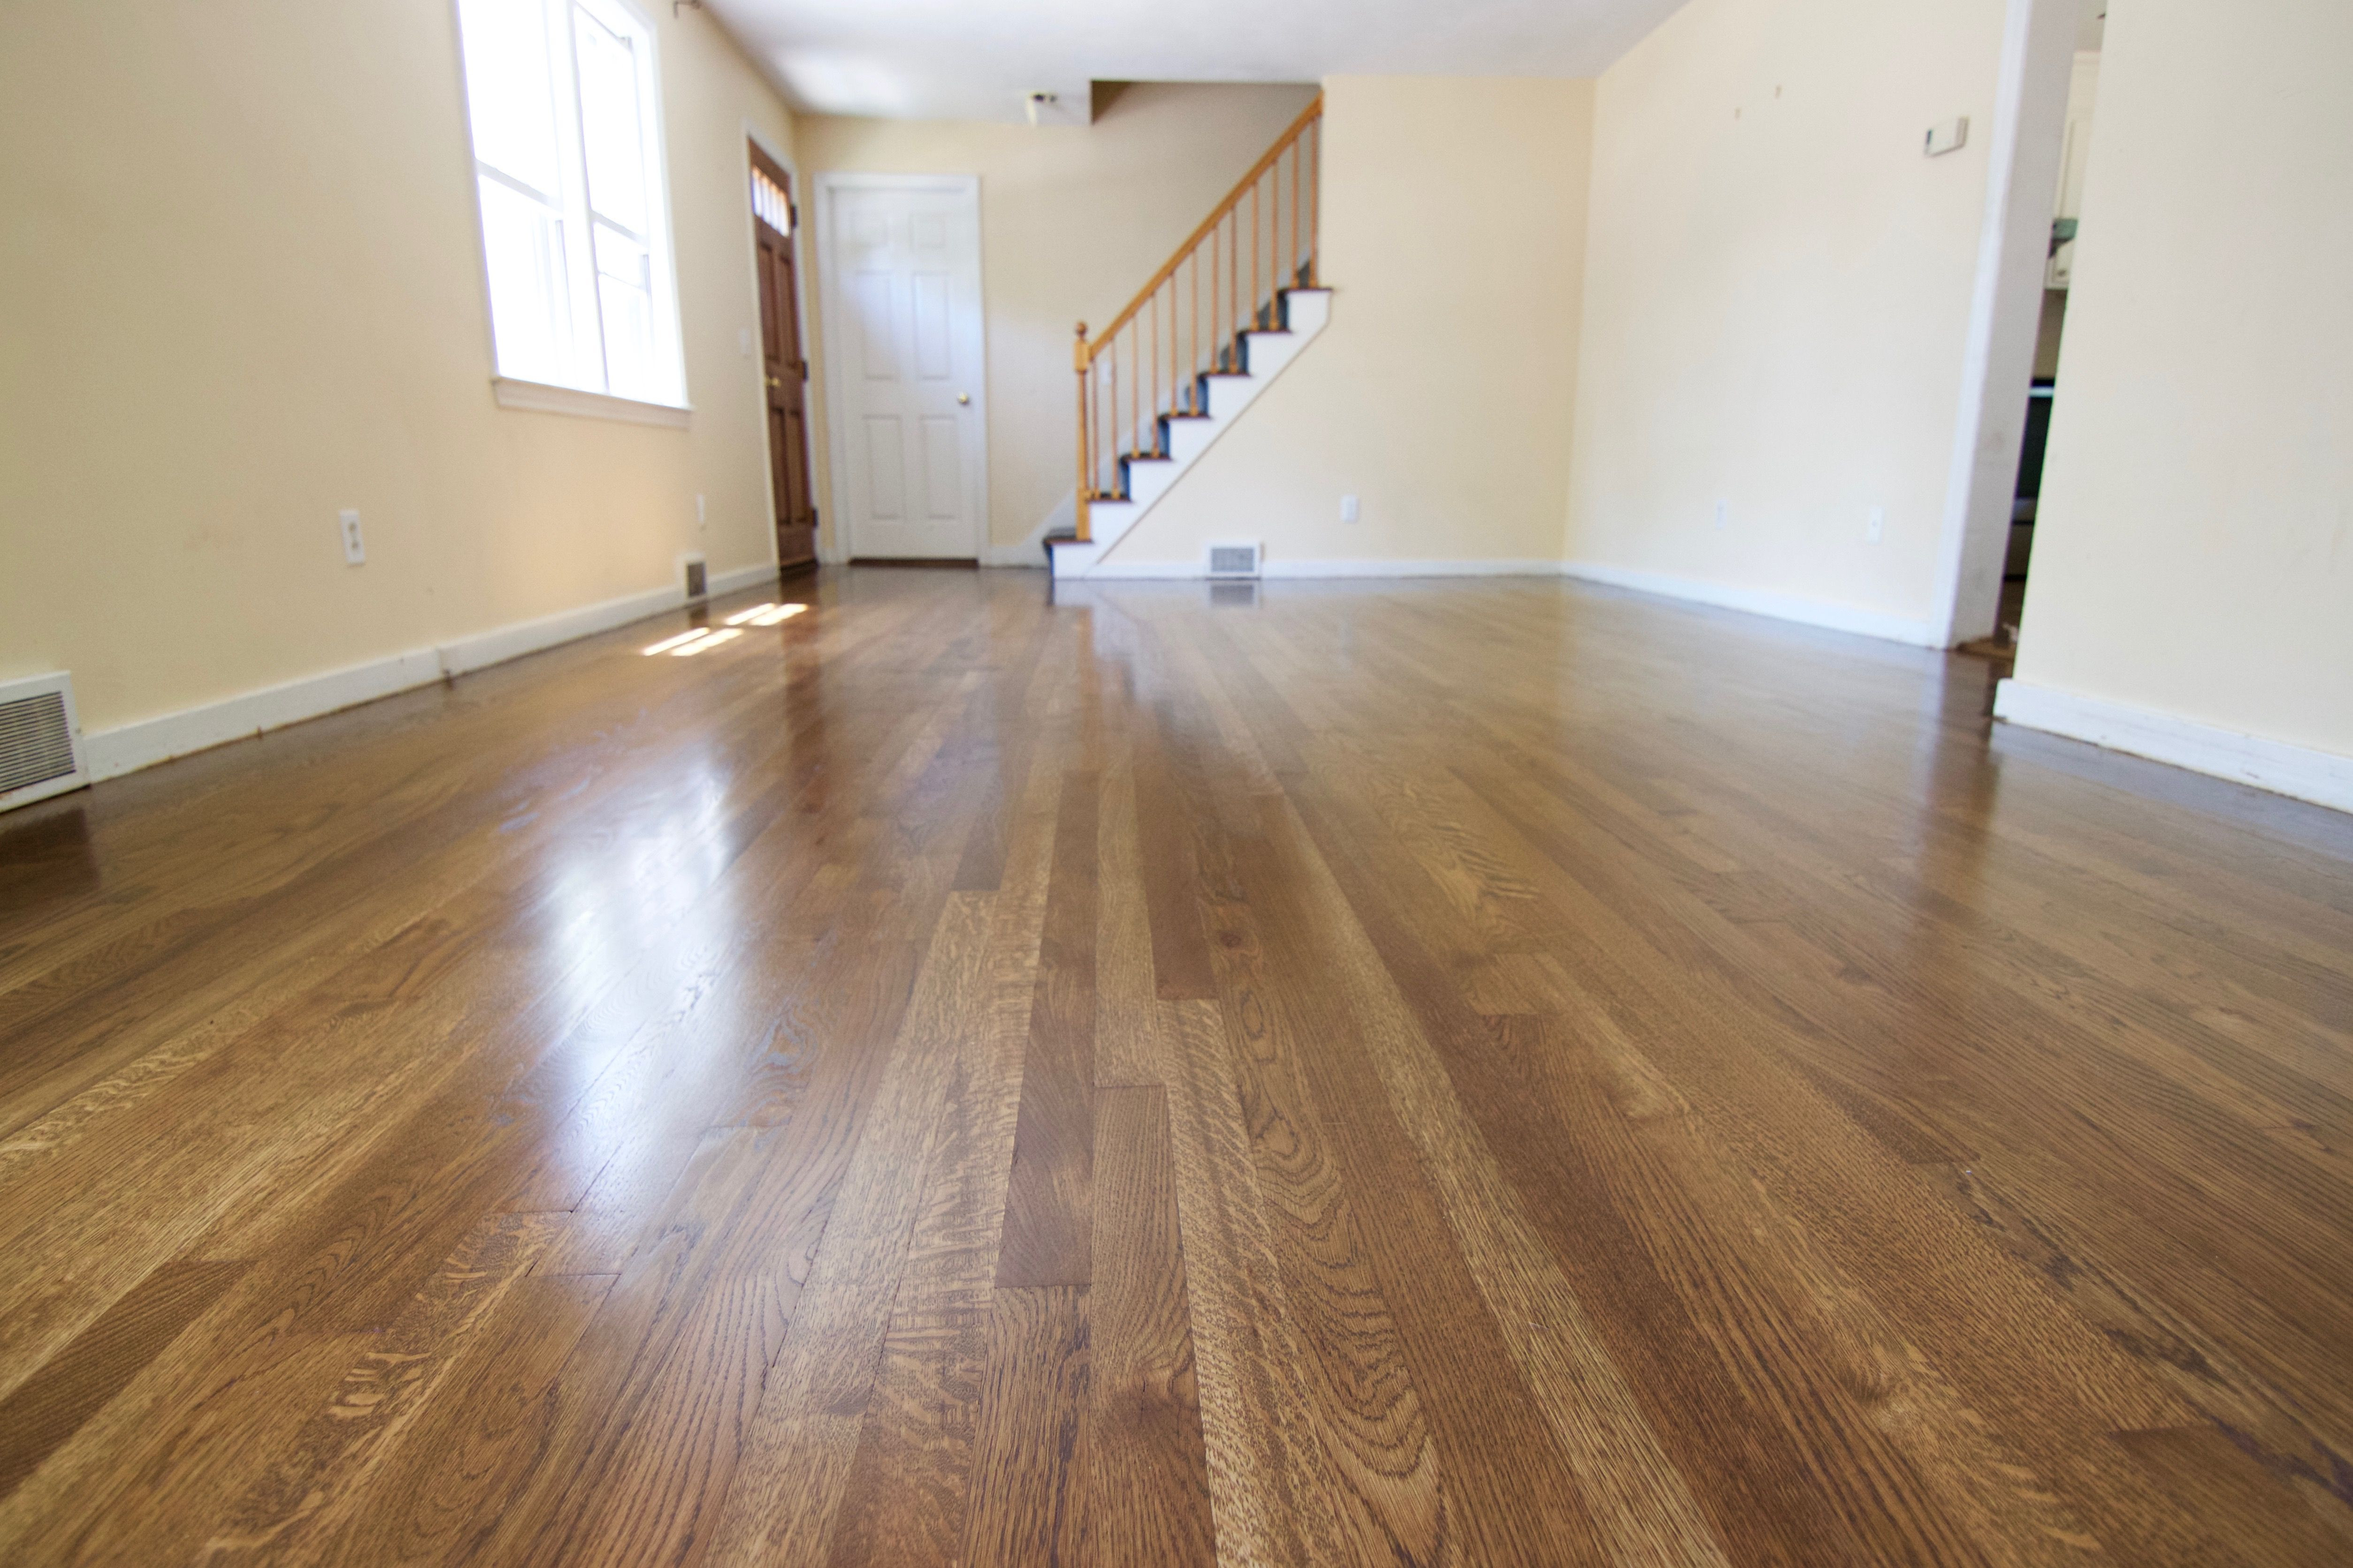 bona hardwood floor colors of jacobean floor stain diagonal concrete floor made to look like wood regarding jacobean floor stain white oak hardwood flooring stained with bona medium brown